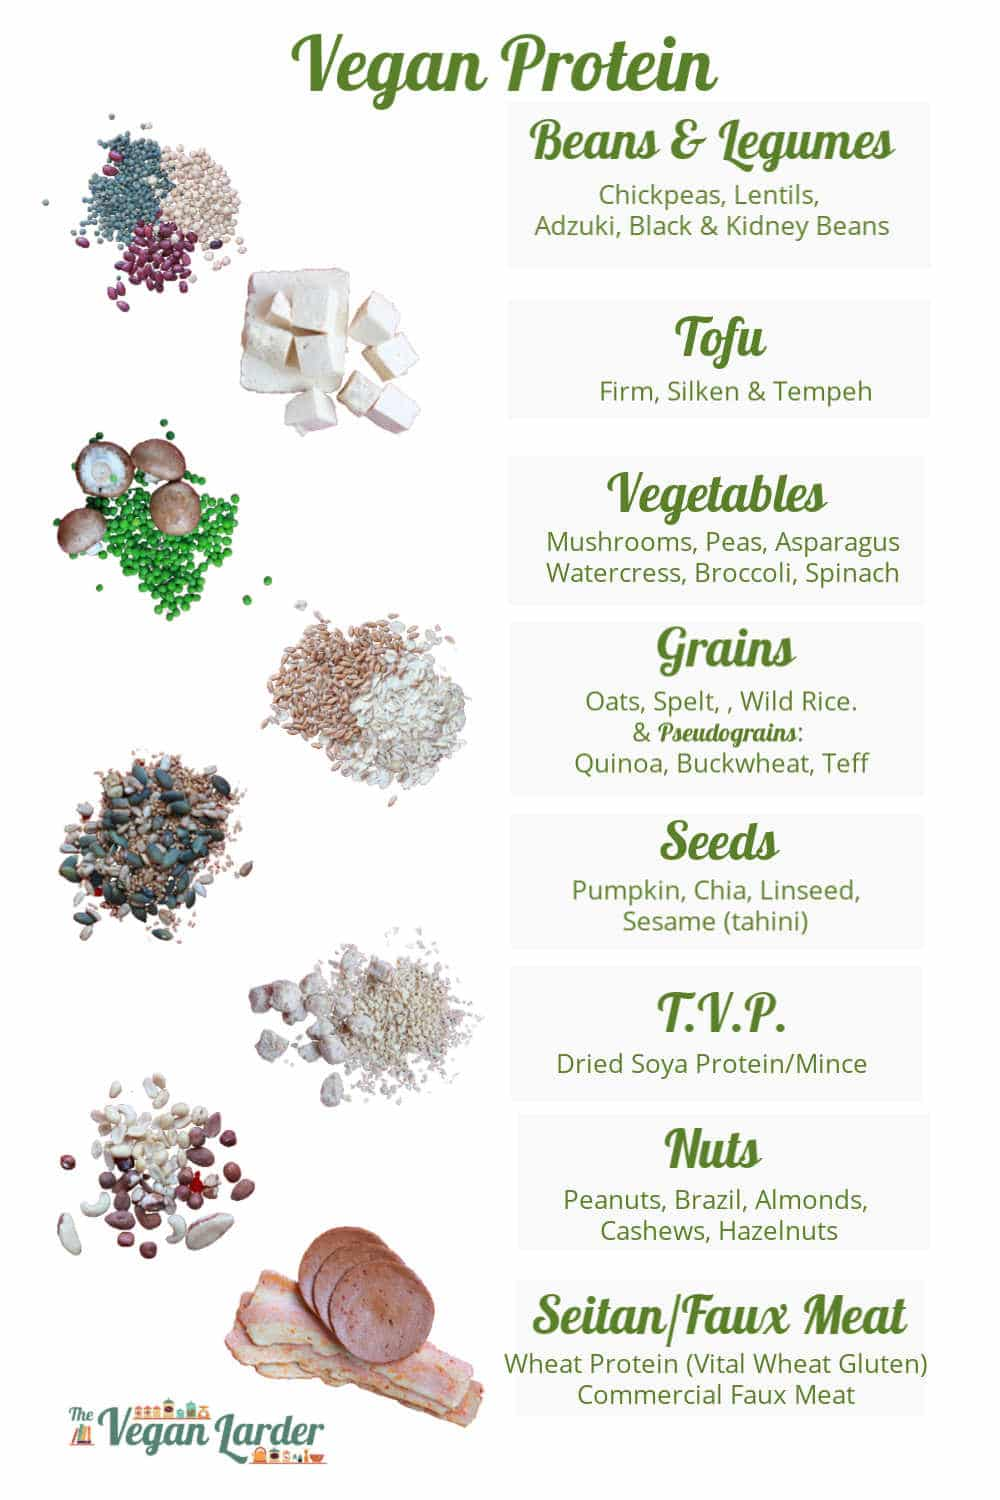 The Best Sources of Vegan and Plant Based Protein